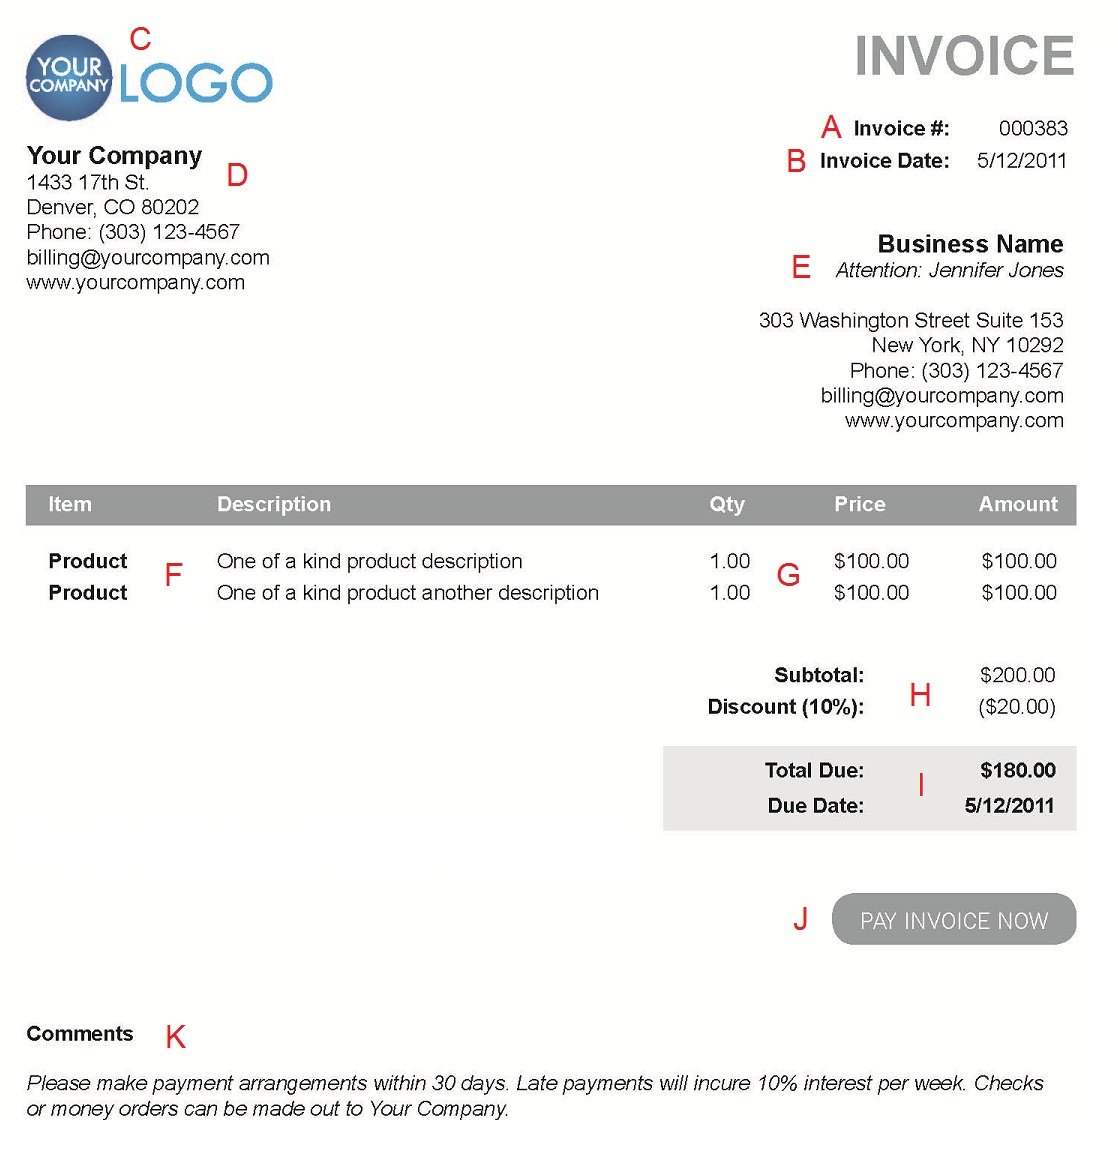 Hucareus  Fascinating The  Different Sections Of An Electronic Payment Invoice With Excellent A  With Attractive Word Invoice Template  Also Drupal Commerce Invoice In Addition Due Upon Receipt Invoice And Acura Rdx Invoice Price As Well As Invoice For Ipad Additionally Email An Invoice From Paysimplecom With Hucareus  Excellent The  Different Sections Of An Electronic Payment Invoice With Attractive A  And Fascinating Word Invoice Template  Also Drupal Commerce Invoice In Addition Due Upon Receipt Invoice From Paysimplecom